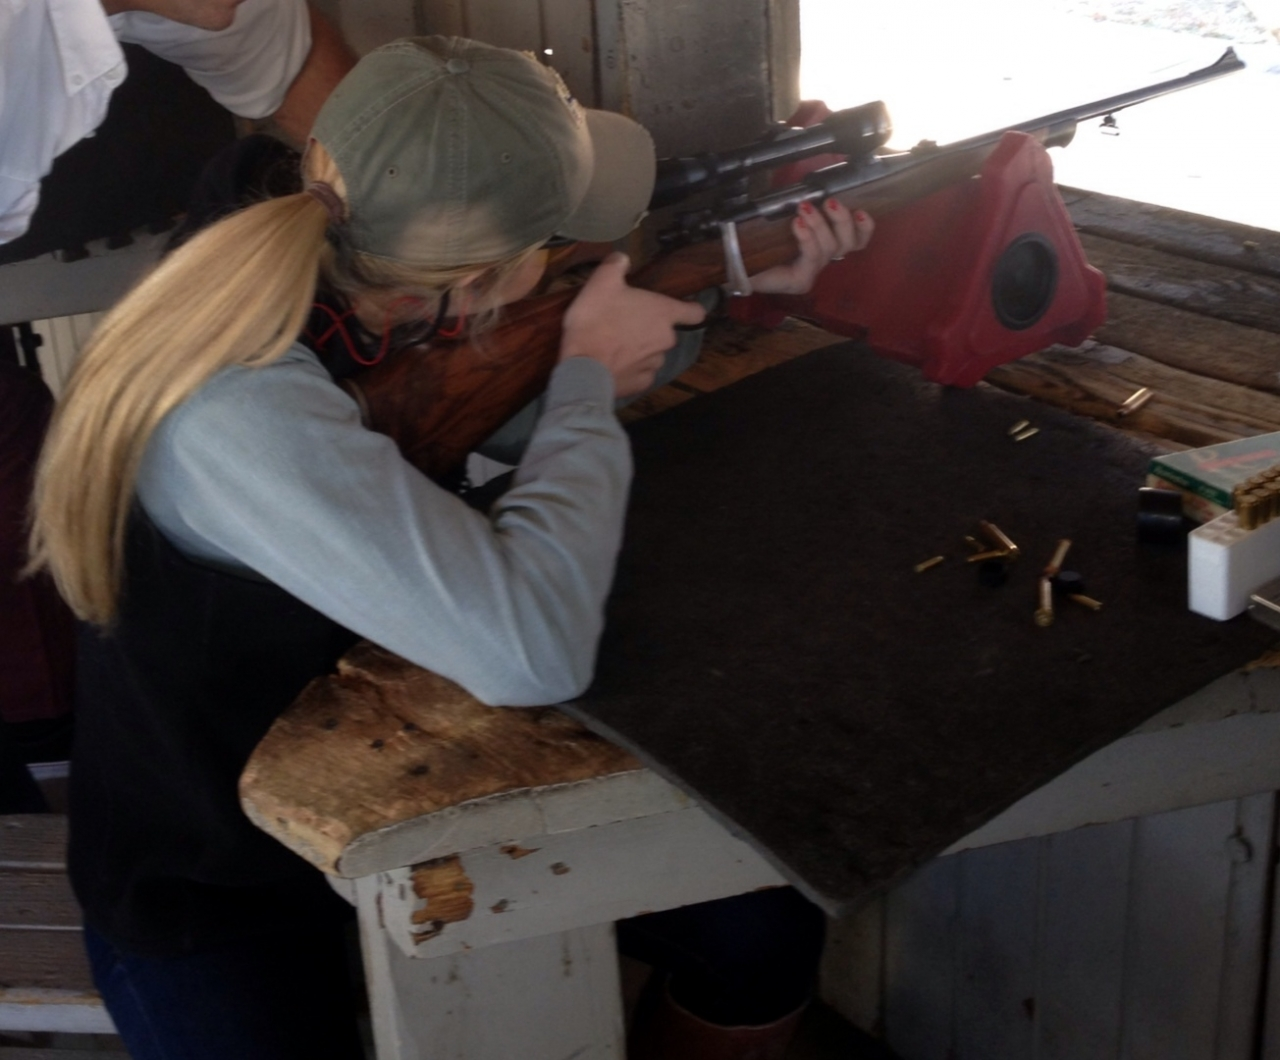 Gifted 6mm rifle to my daughter 2018-01-17